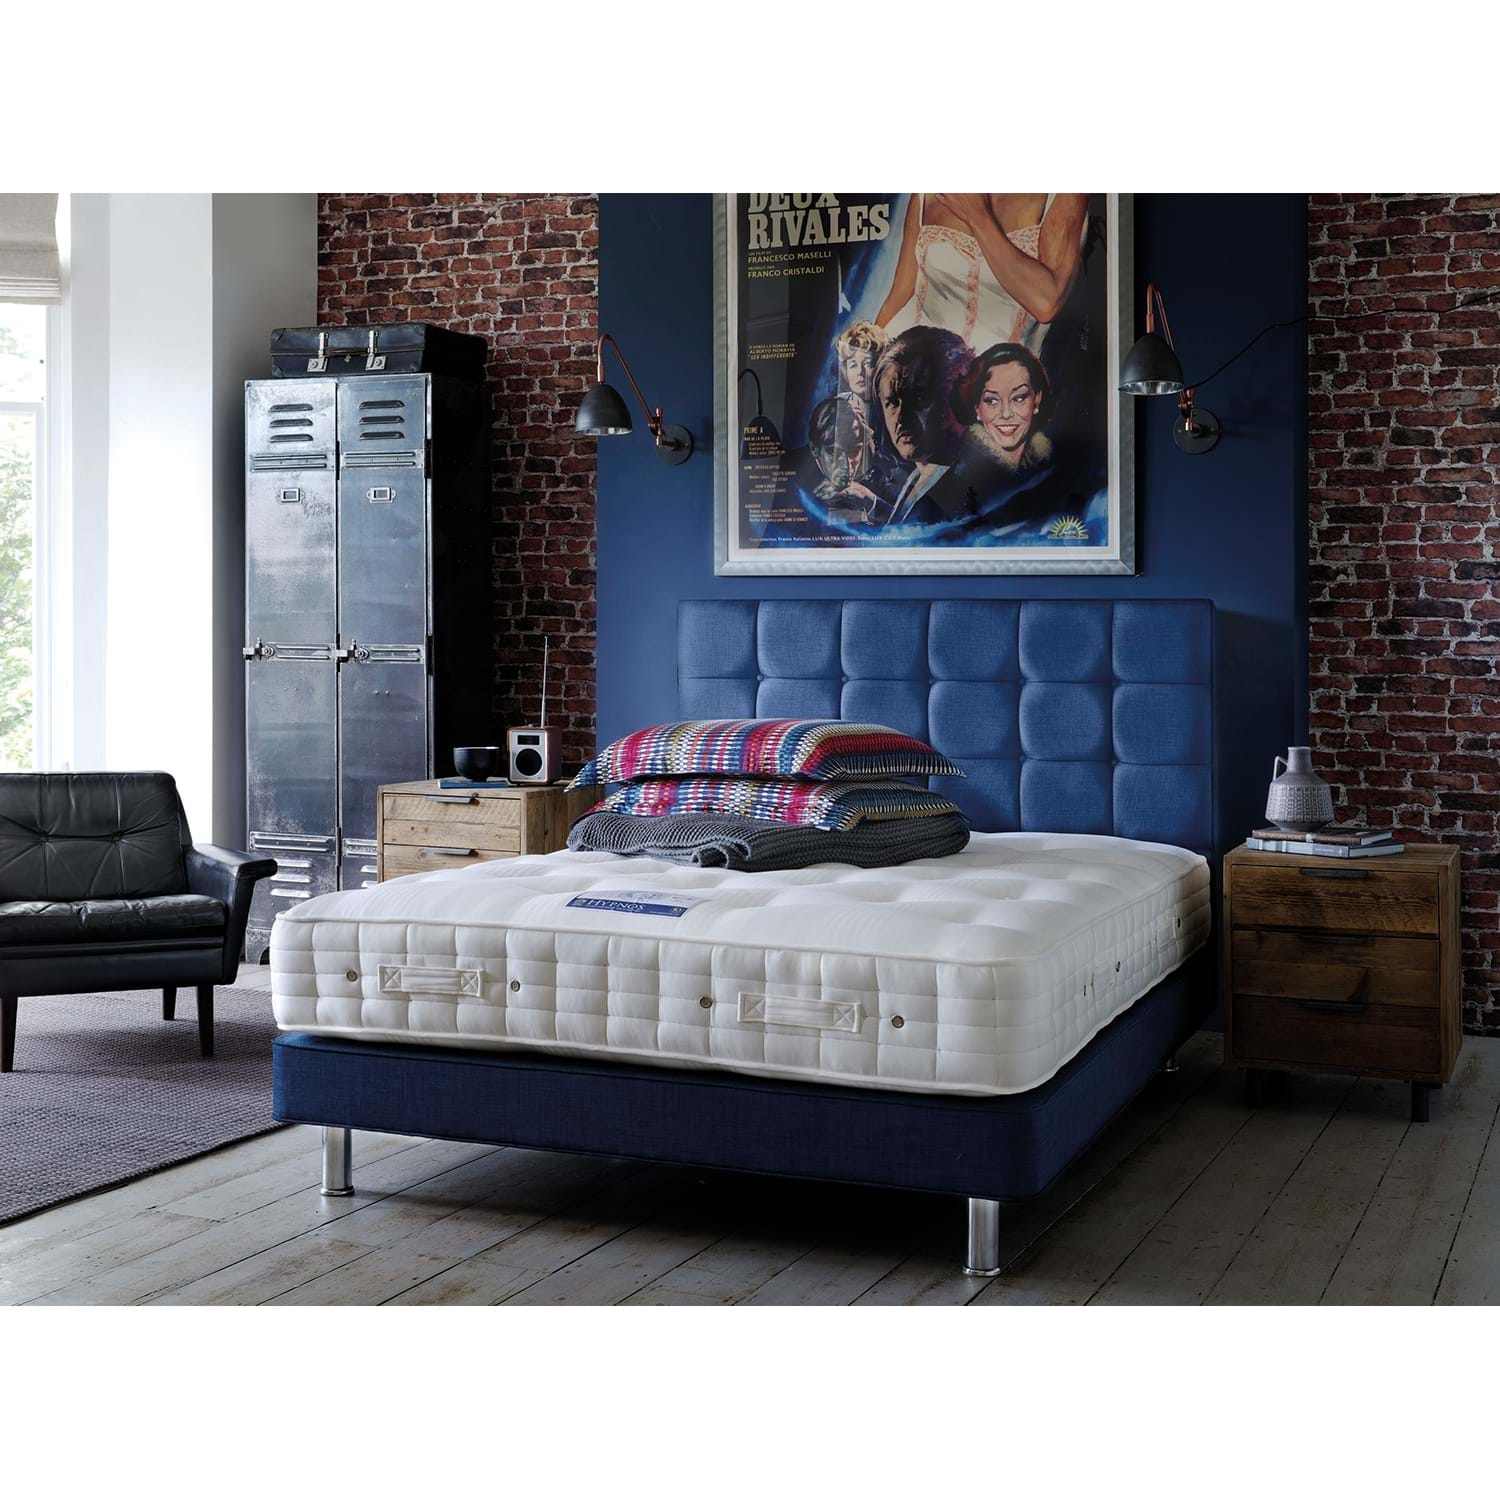 Image of Hypnos Comfort Supreme Wool Double Mattress